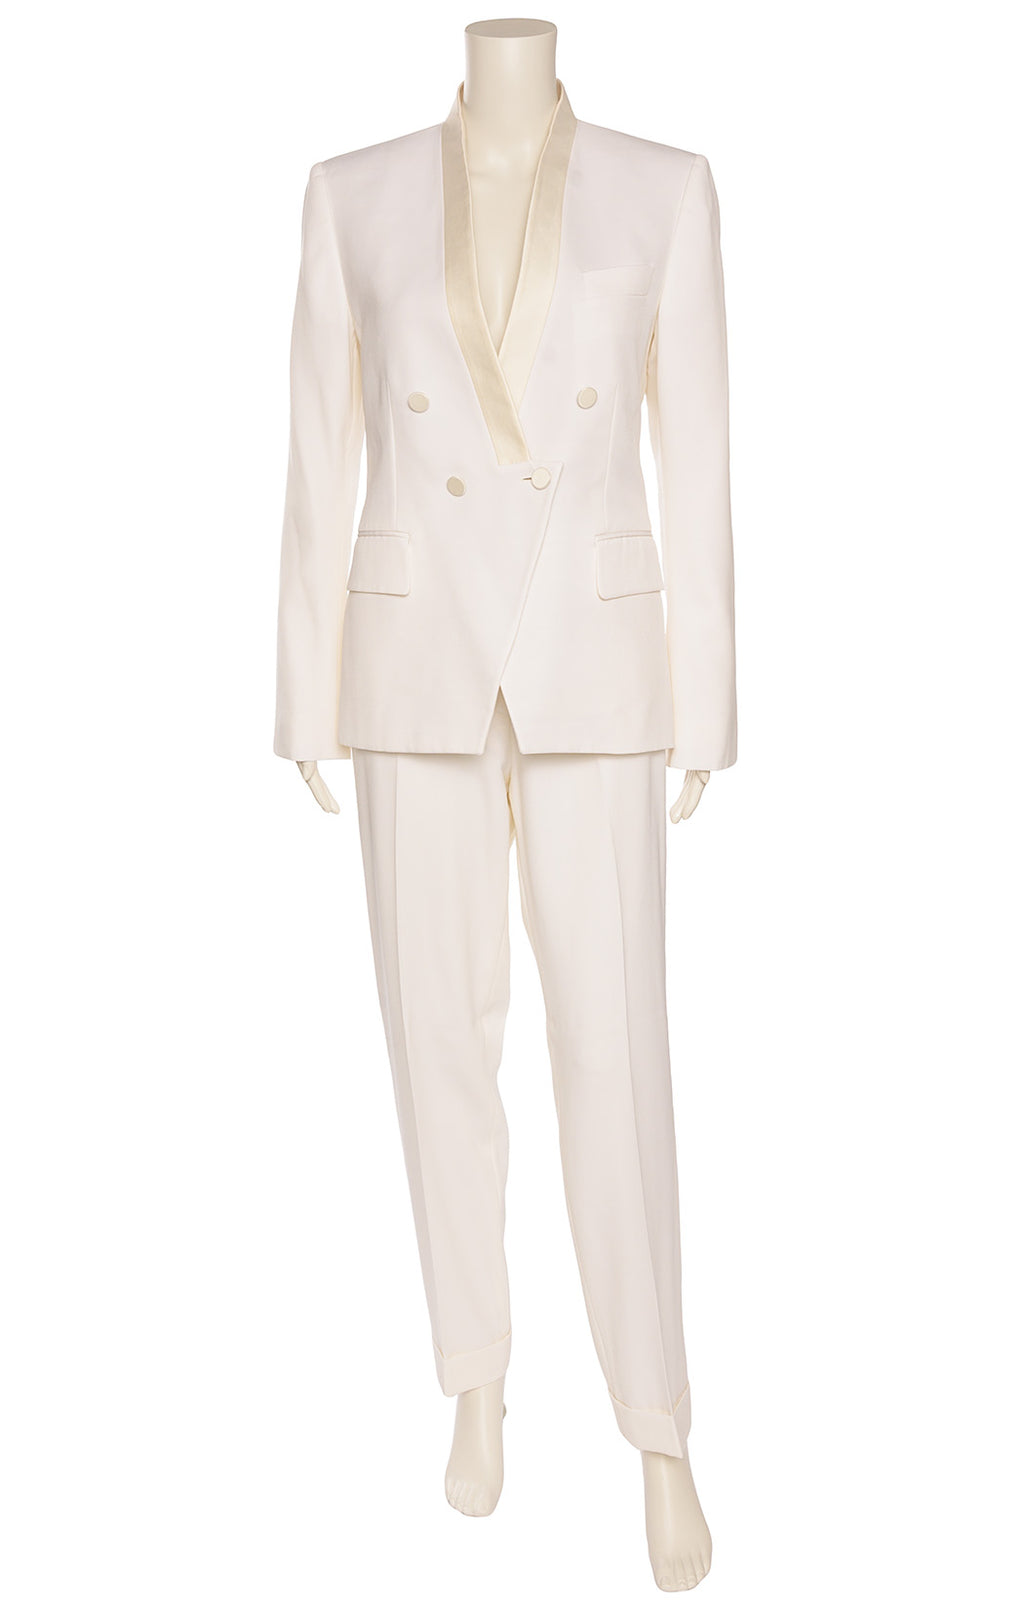 STELLA MCCARTNEY  Pantsuit Size: Jacket IT 44 (comparable to US 8) Pants IT 46 (comparable to US 10)